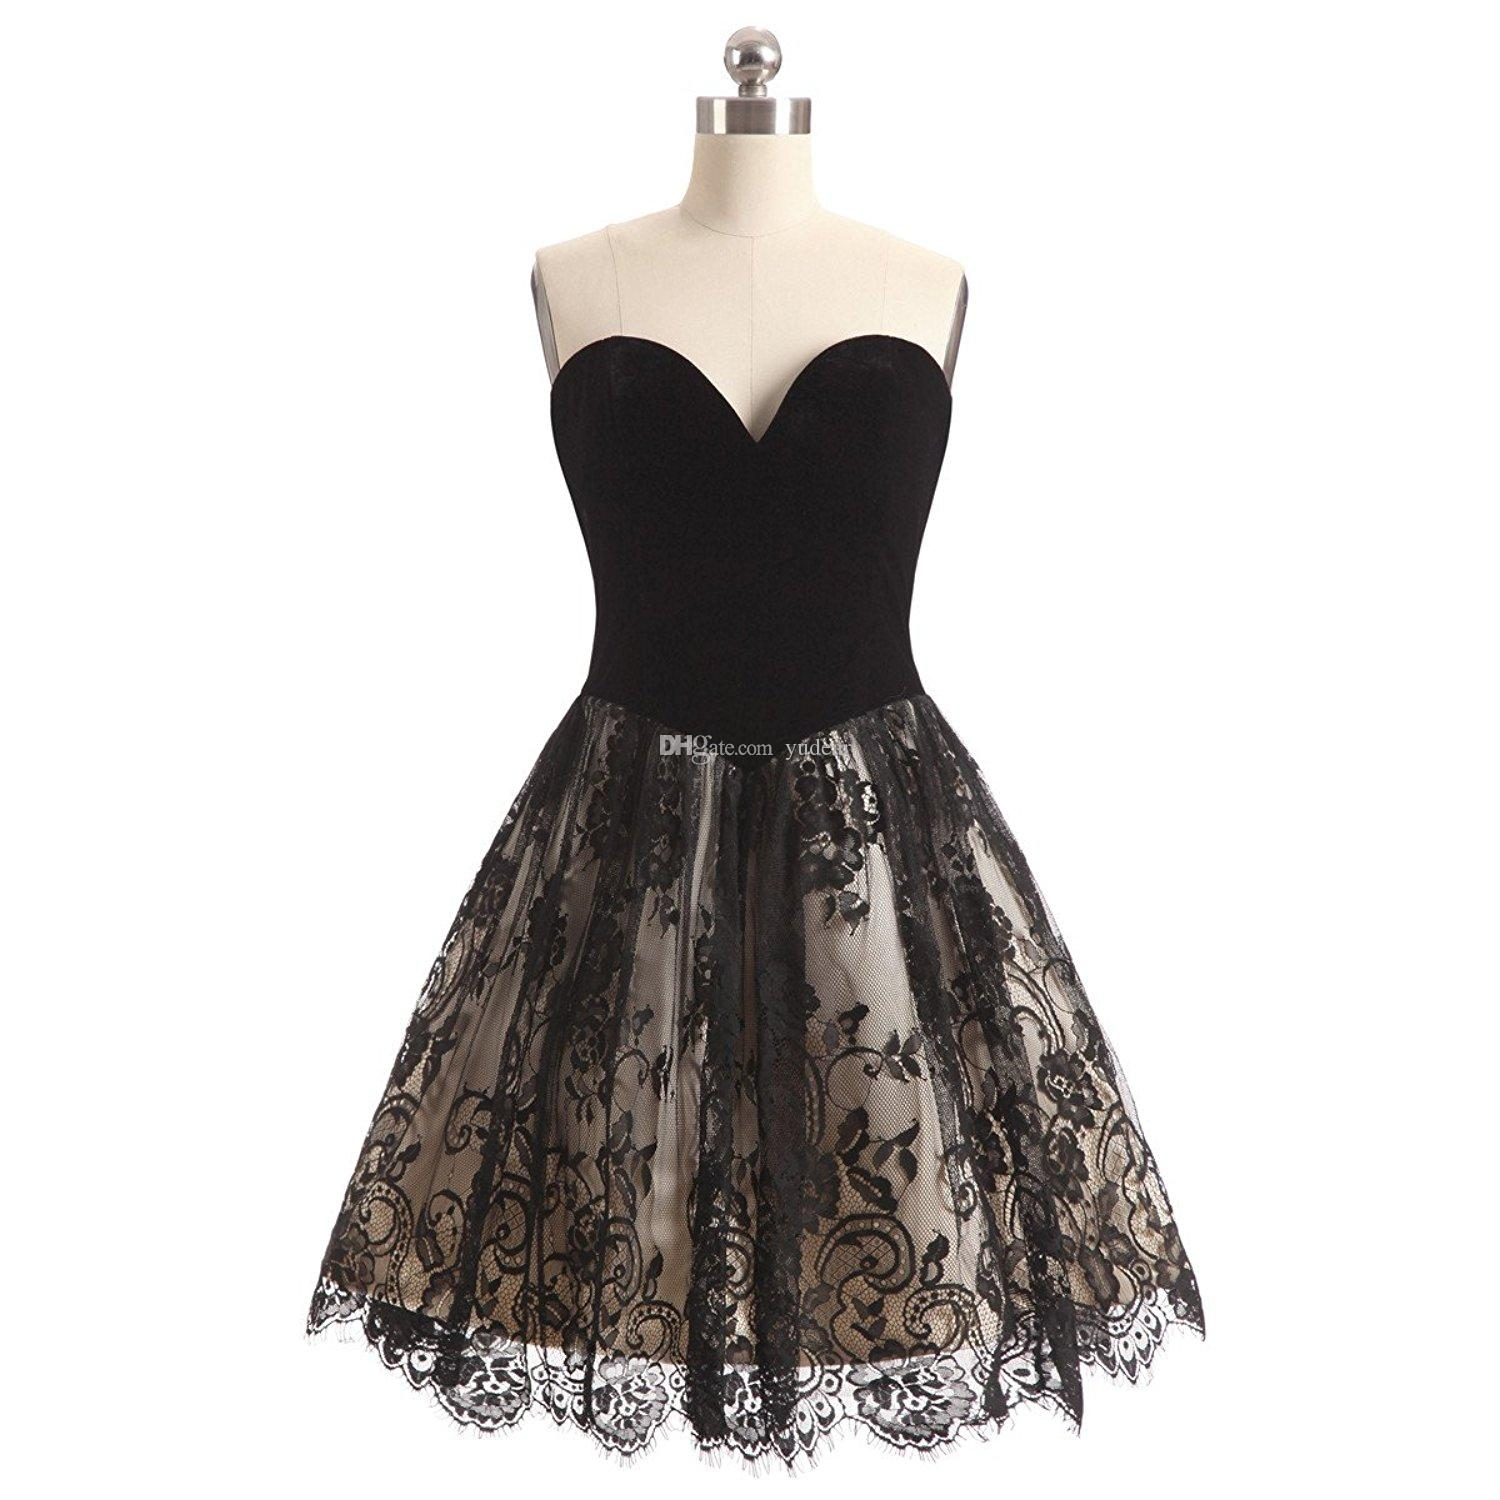 Charming Lace 2019 Sweetheart Women Homecoming Dresses Short Prom Party Gowns Cheap Tiered Skirt A Line Princess Prom Gown For Juniors Ball